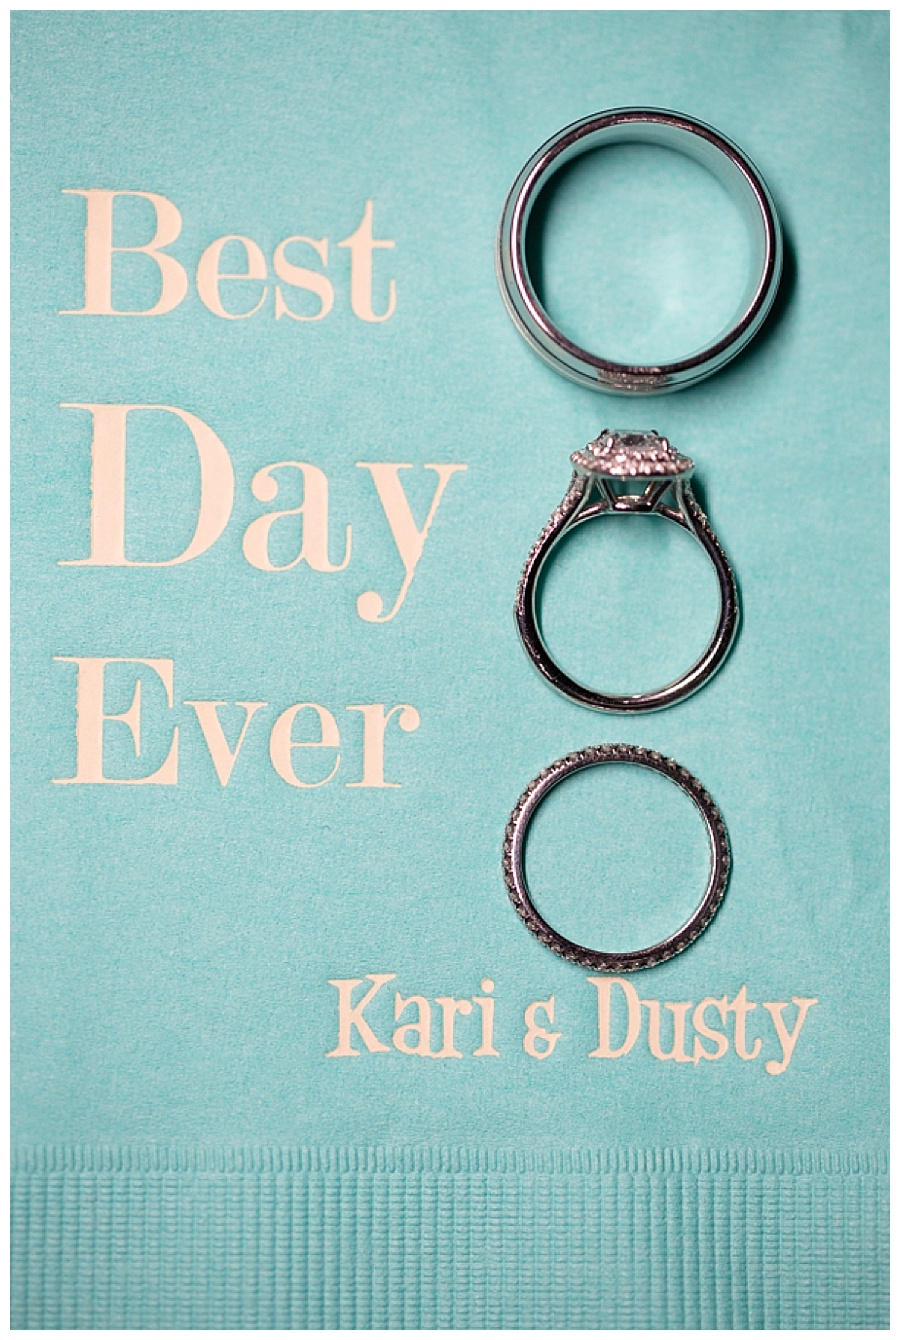 35 Best Day Ever Wedding Ring Photo